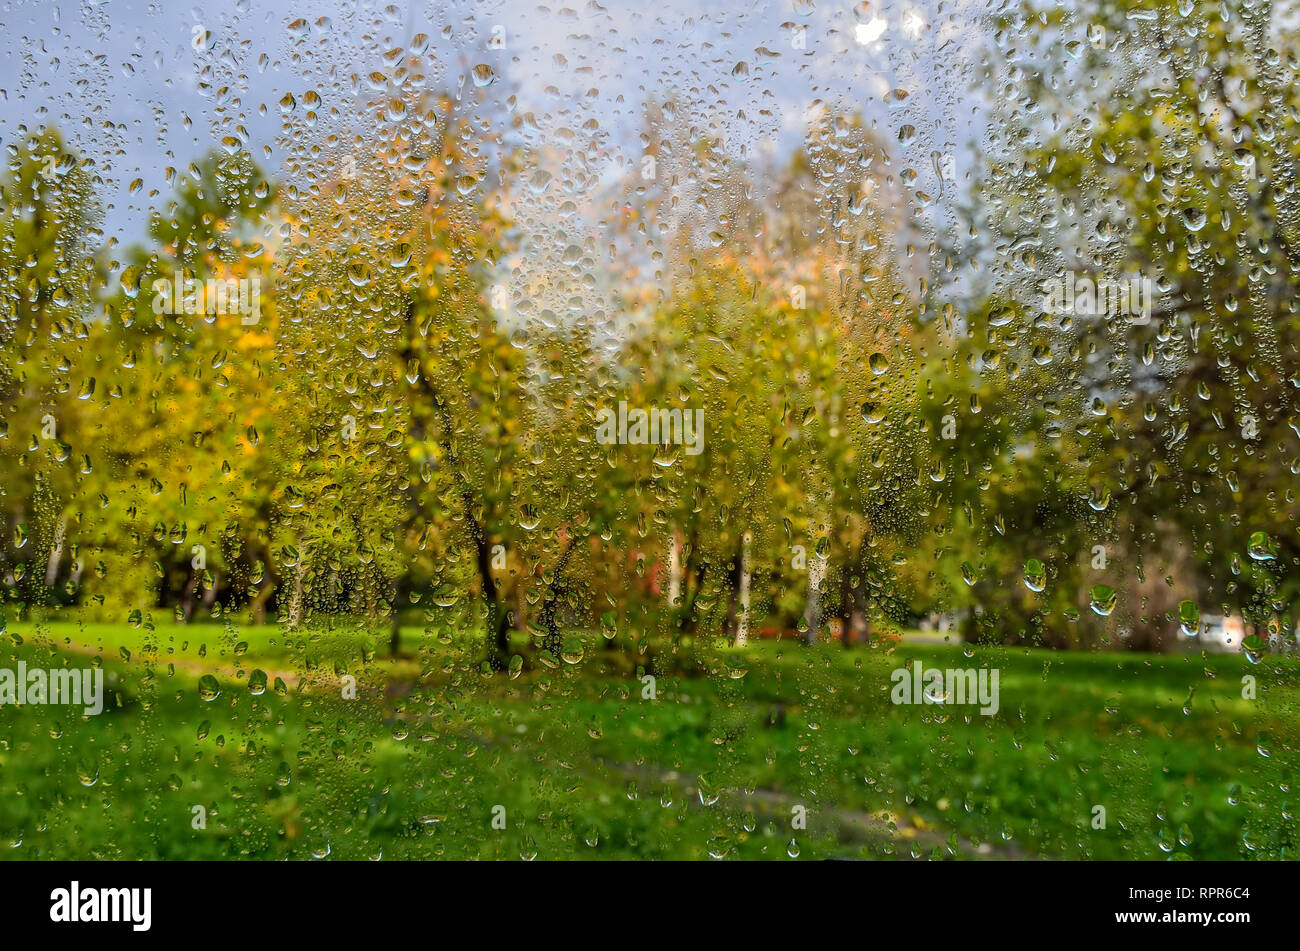 Bright, colorful autumn blurred landscape in city park with wet foliage after rain through  wet window glass with raindrops. Rainy autumn weather and  - Stock Image